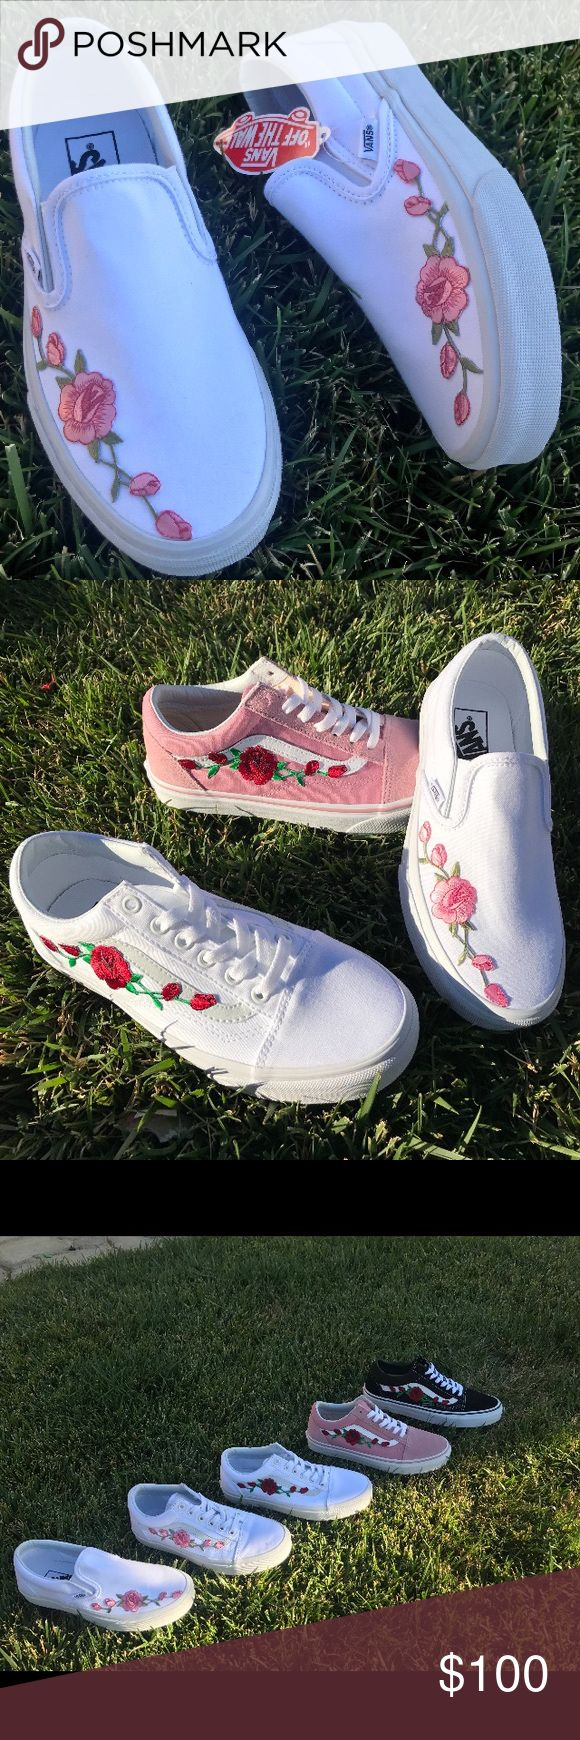 embroidered vans vans in all colors and sizes! embroidered with pink or red roses.  1. select size and color vans 2. select cherry blossom or roses  another option: send in your already used vans and i could custom them for $20 Vans Shoes Sneakers